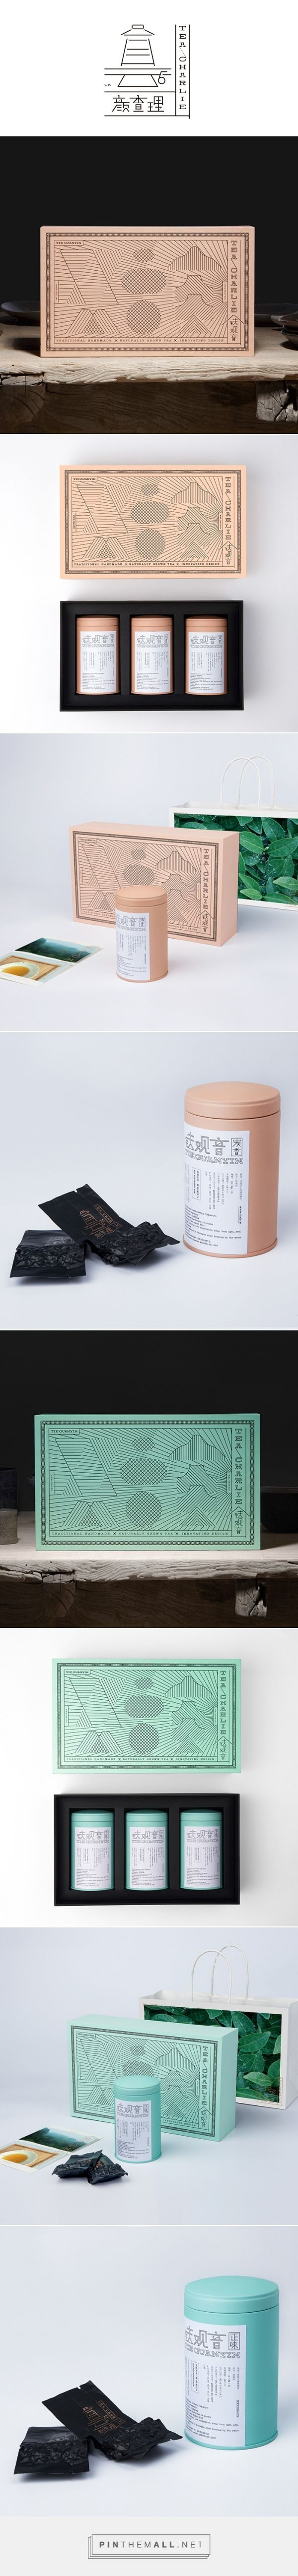 线之乐章,颜查理标志设计 | 壹手设计via iyeslogo curated by Packaging Diva PD. Charlie tea packaging design